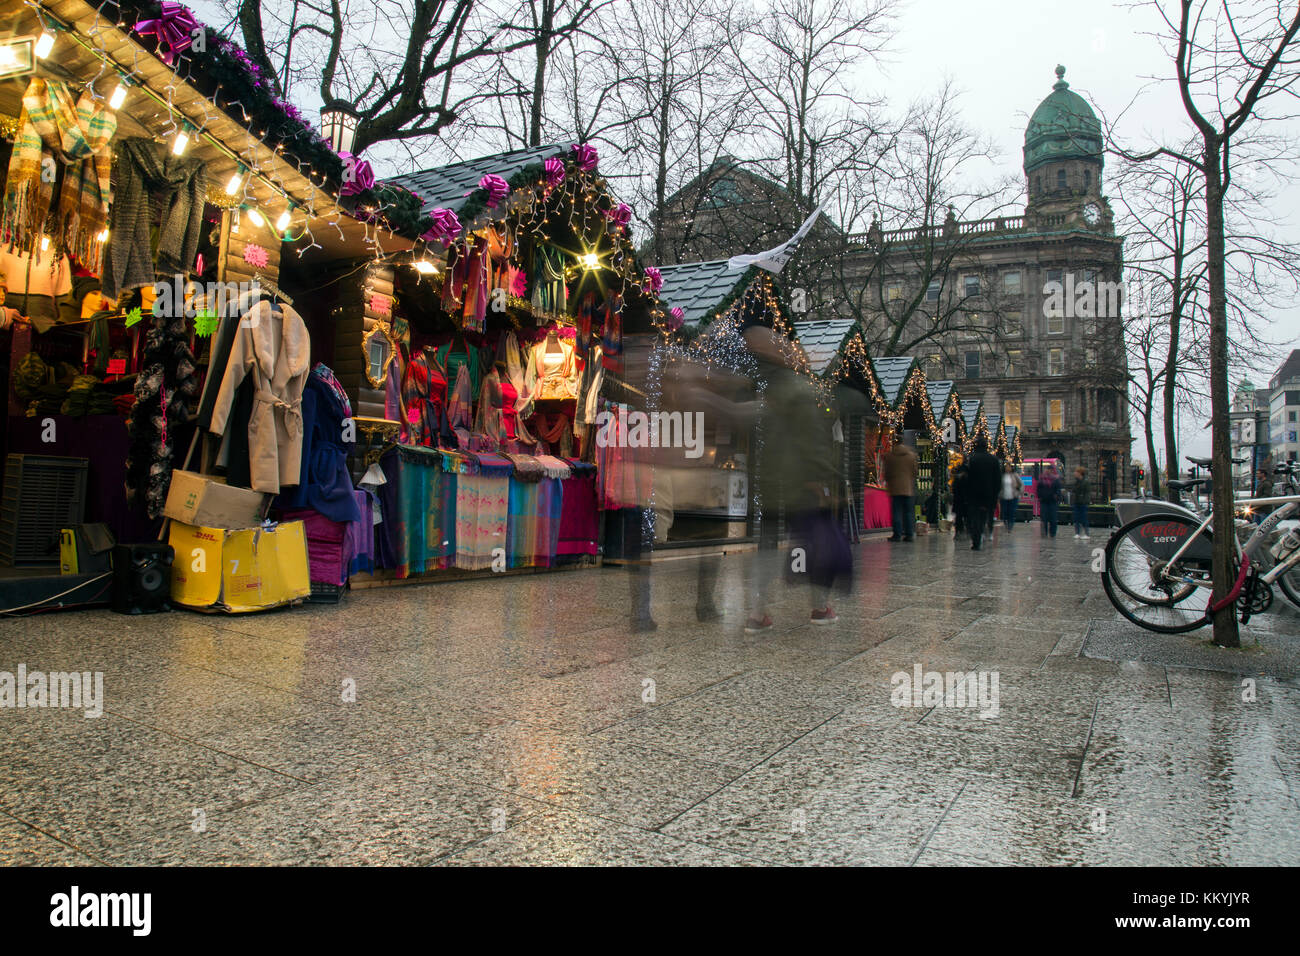 Belfast, Northern Ireland - 20th November 2017 - Christmas market at the city hall. A traditional festive market - Stock Image